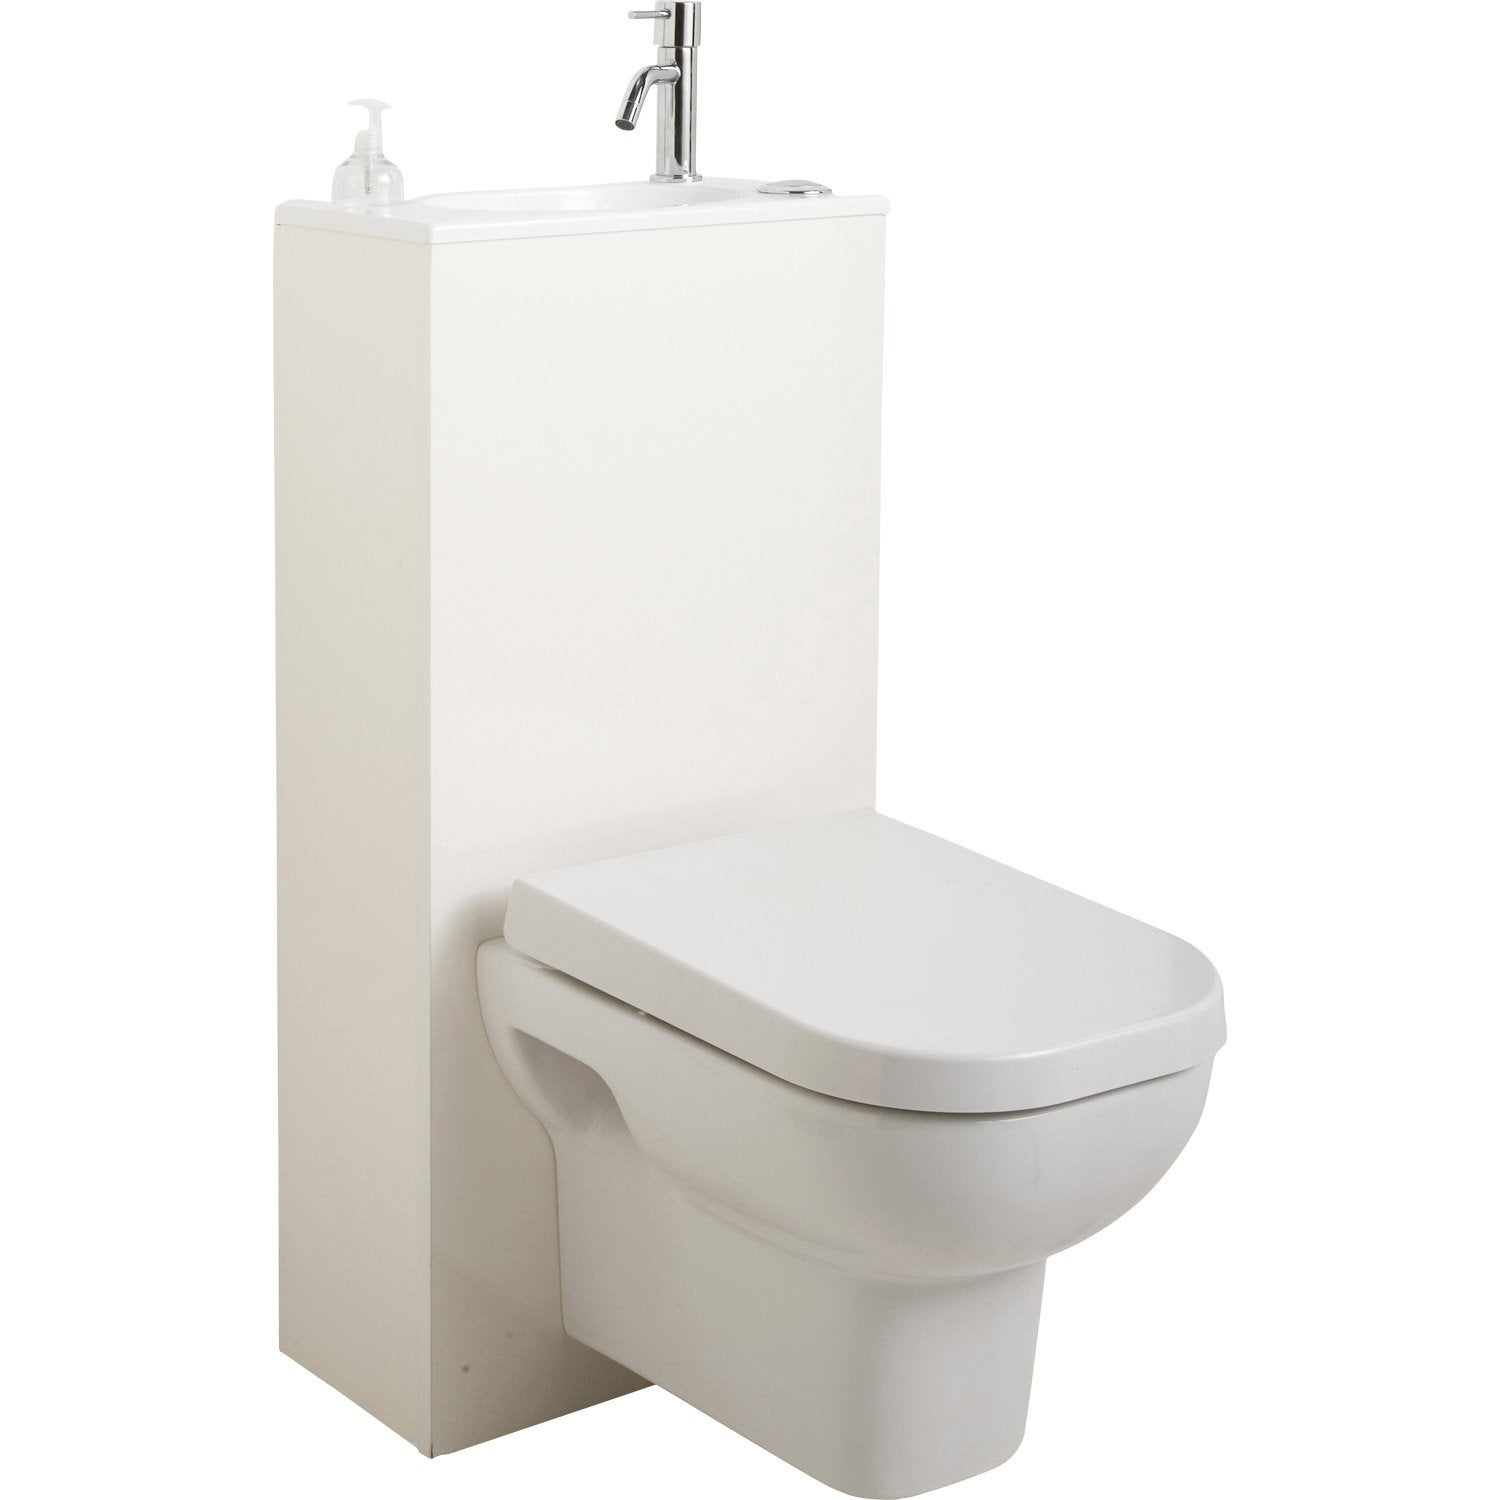 Pack wc suspendu gain de place trio leroy merlin - Pack toilette suspendu ...